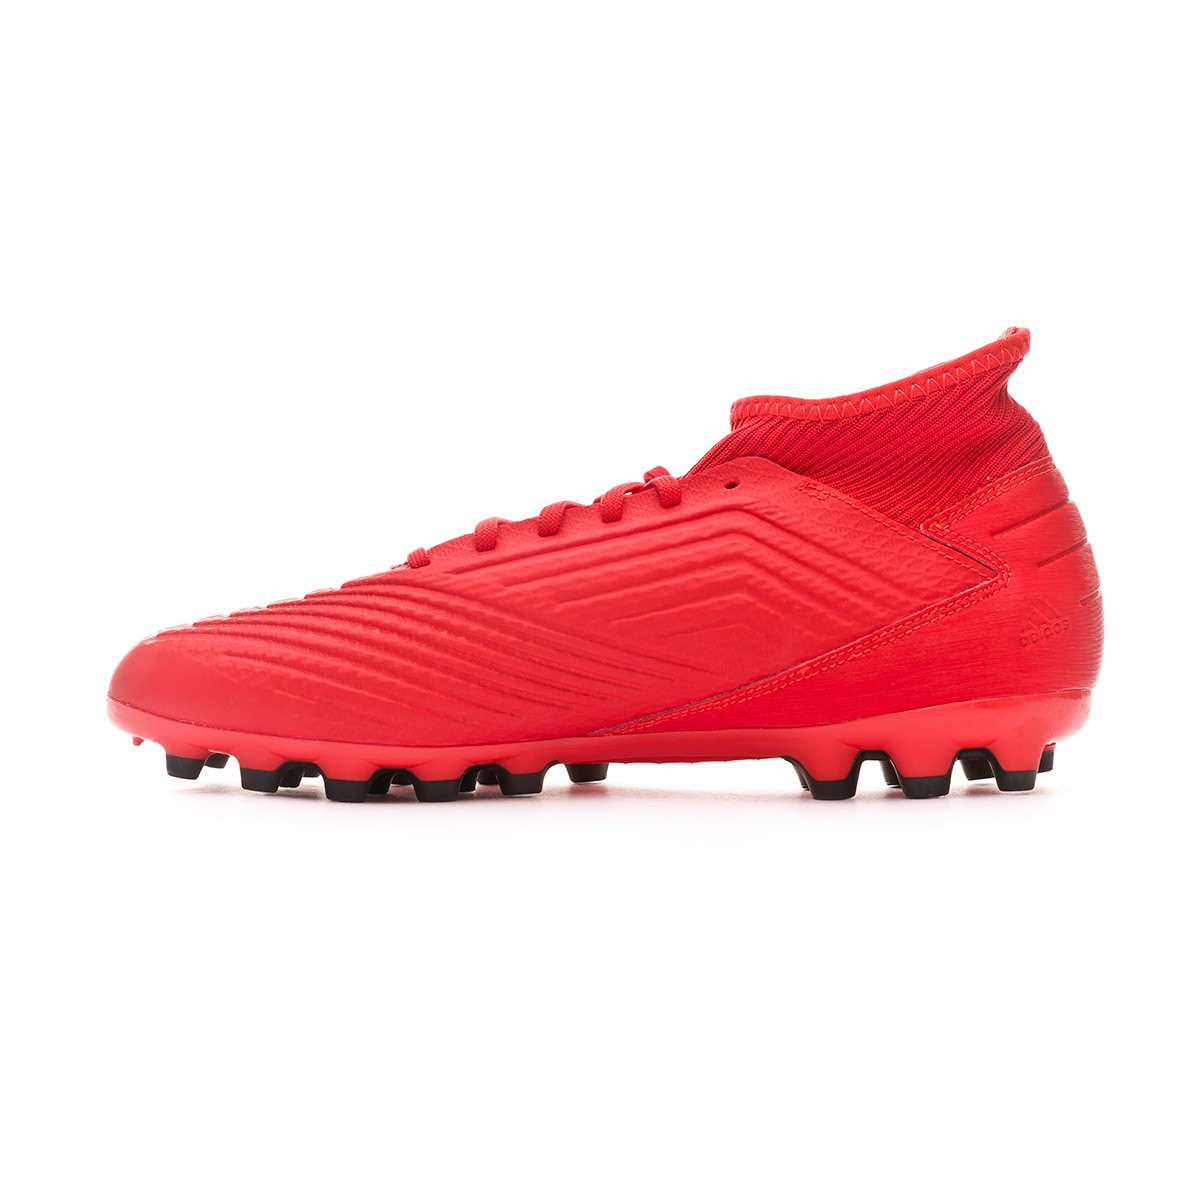 best website a7a17 e48eb Football Boots adidas Predator 19.3 AG Active red-Solar red-Core black -  Football store Fútbol Emotion